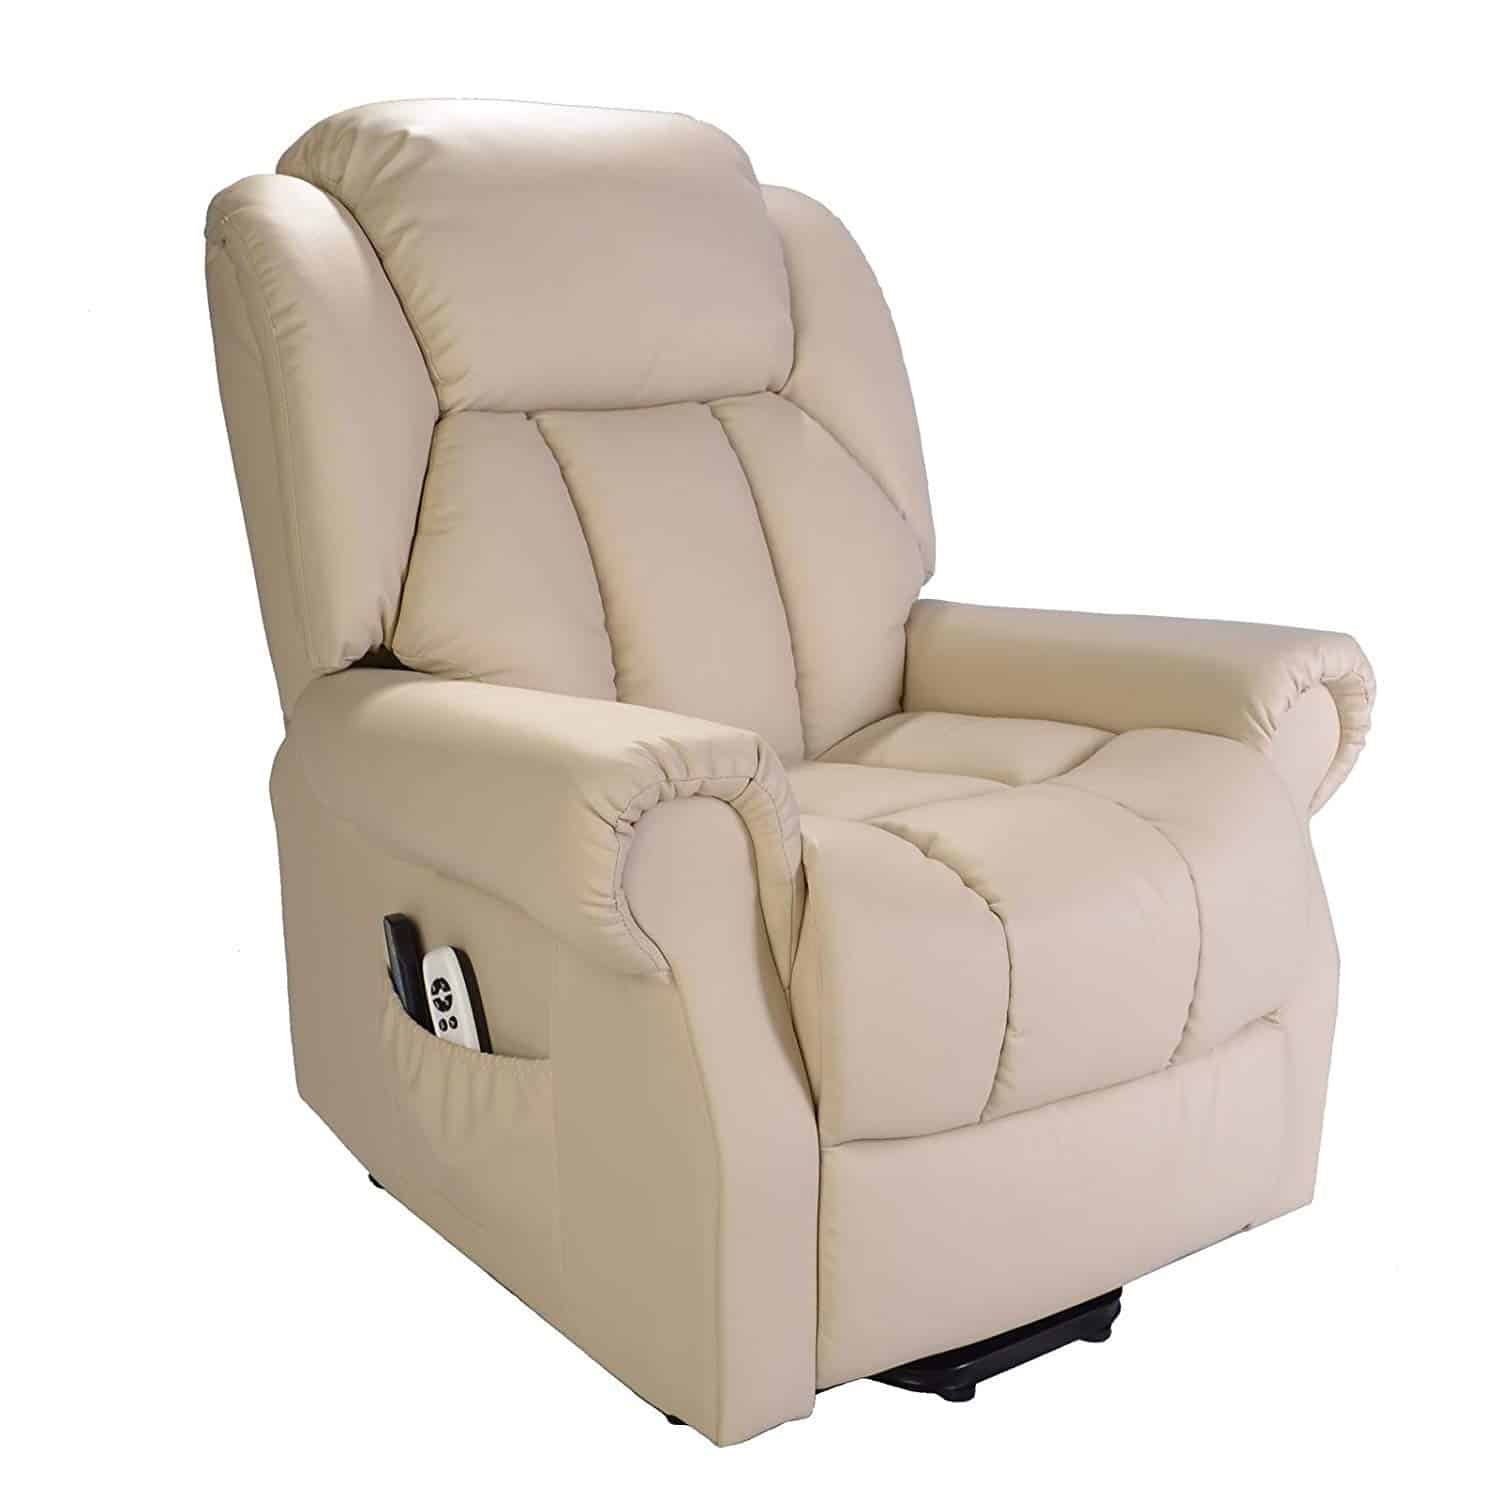 Hainworth Leather Electric Powered Recliner Chair with Heat and Massage